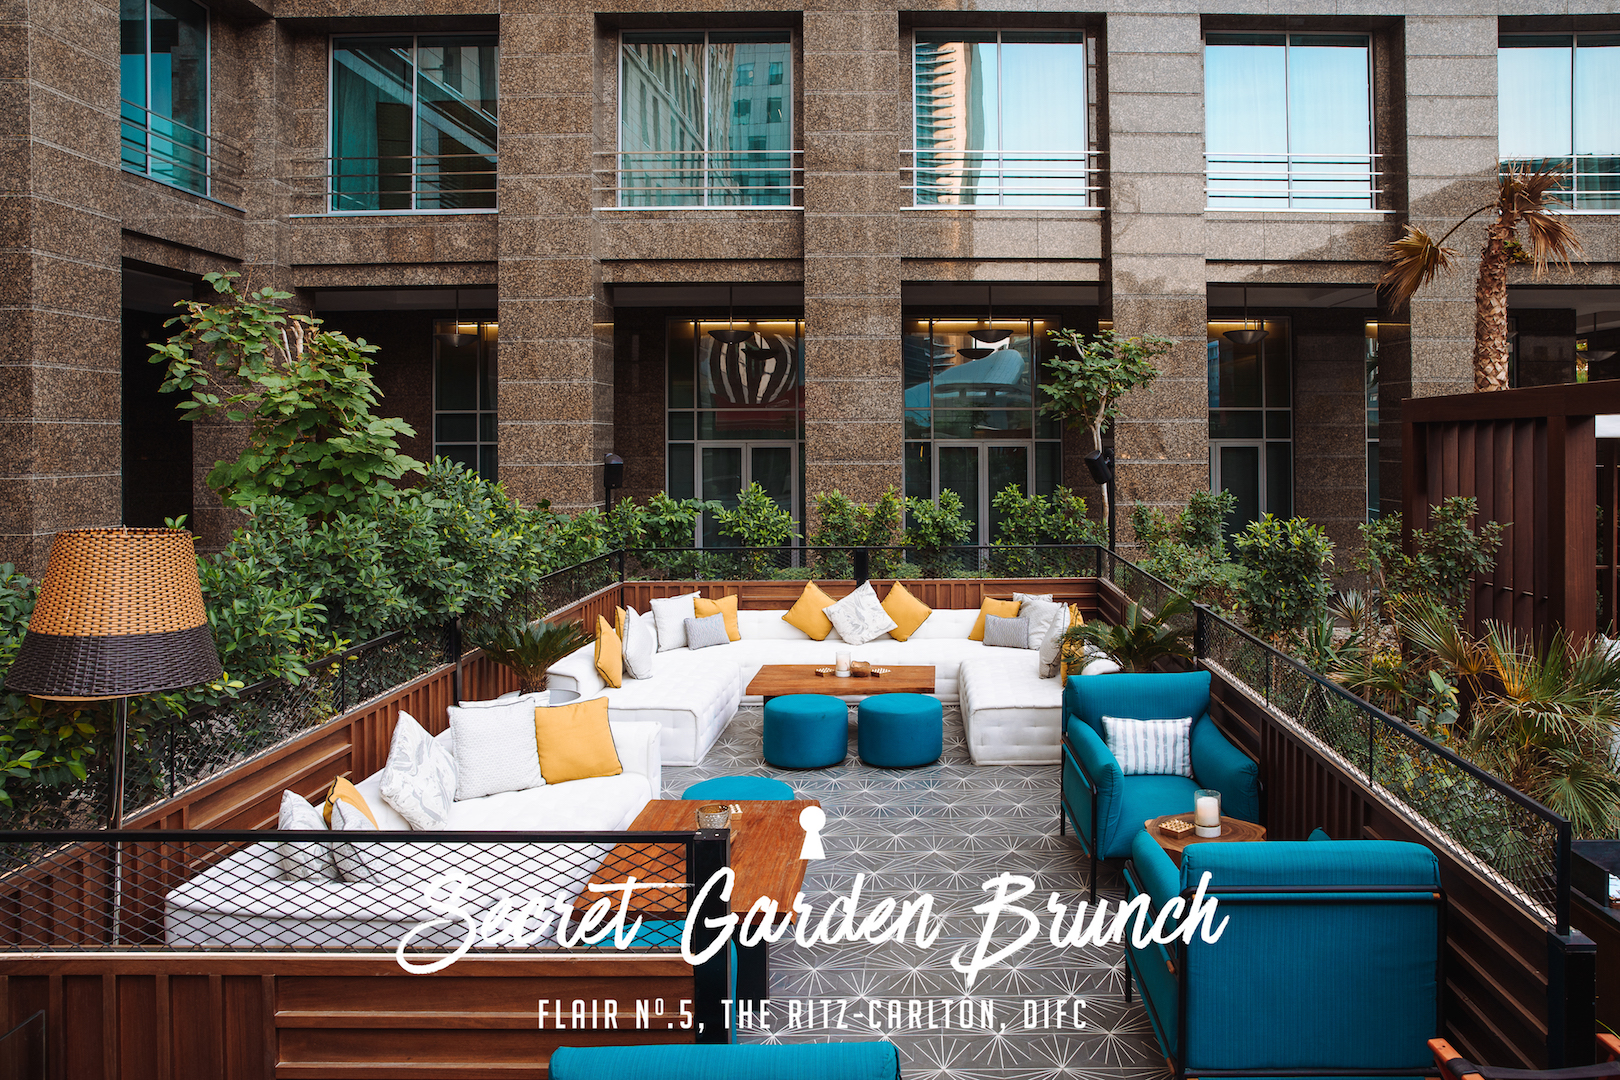 Secret Garden Brunch at Flair No.5